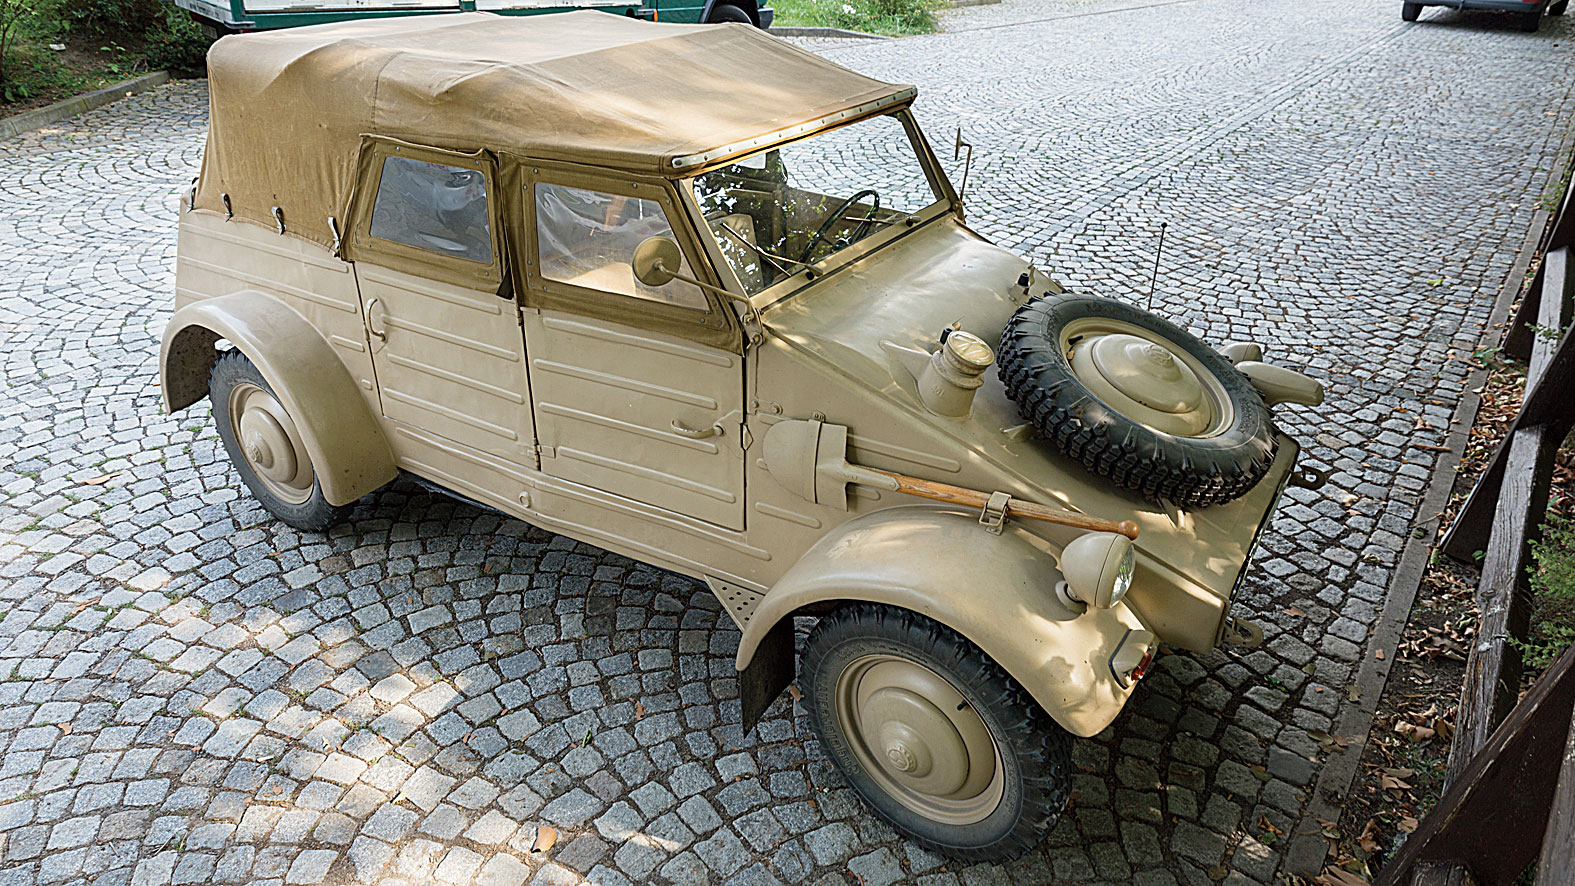 With the changes demanded by the German army, it became the Type 82 Kubelwagen, or 'bucket car' that the chief of the Afrika Corps Erwin Rommel would go on to say had saved his life since it could ride over landmines without setting them off